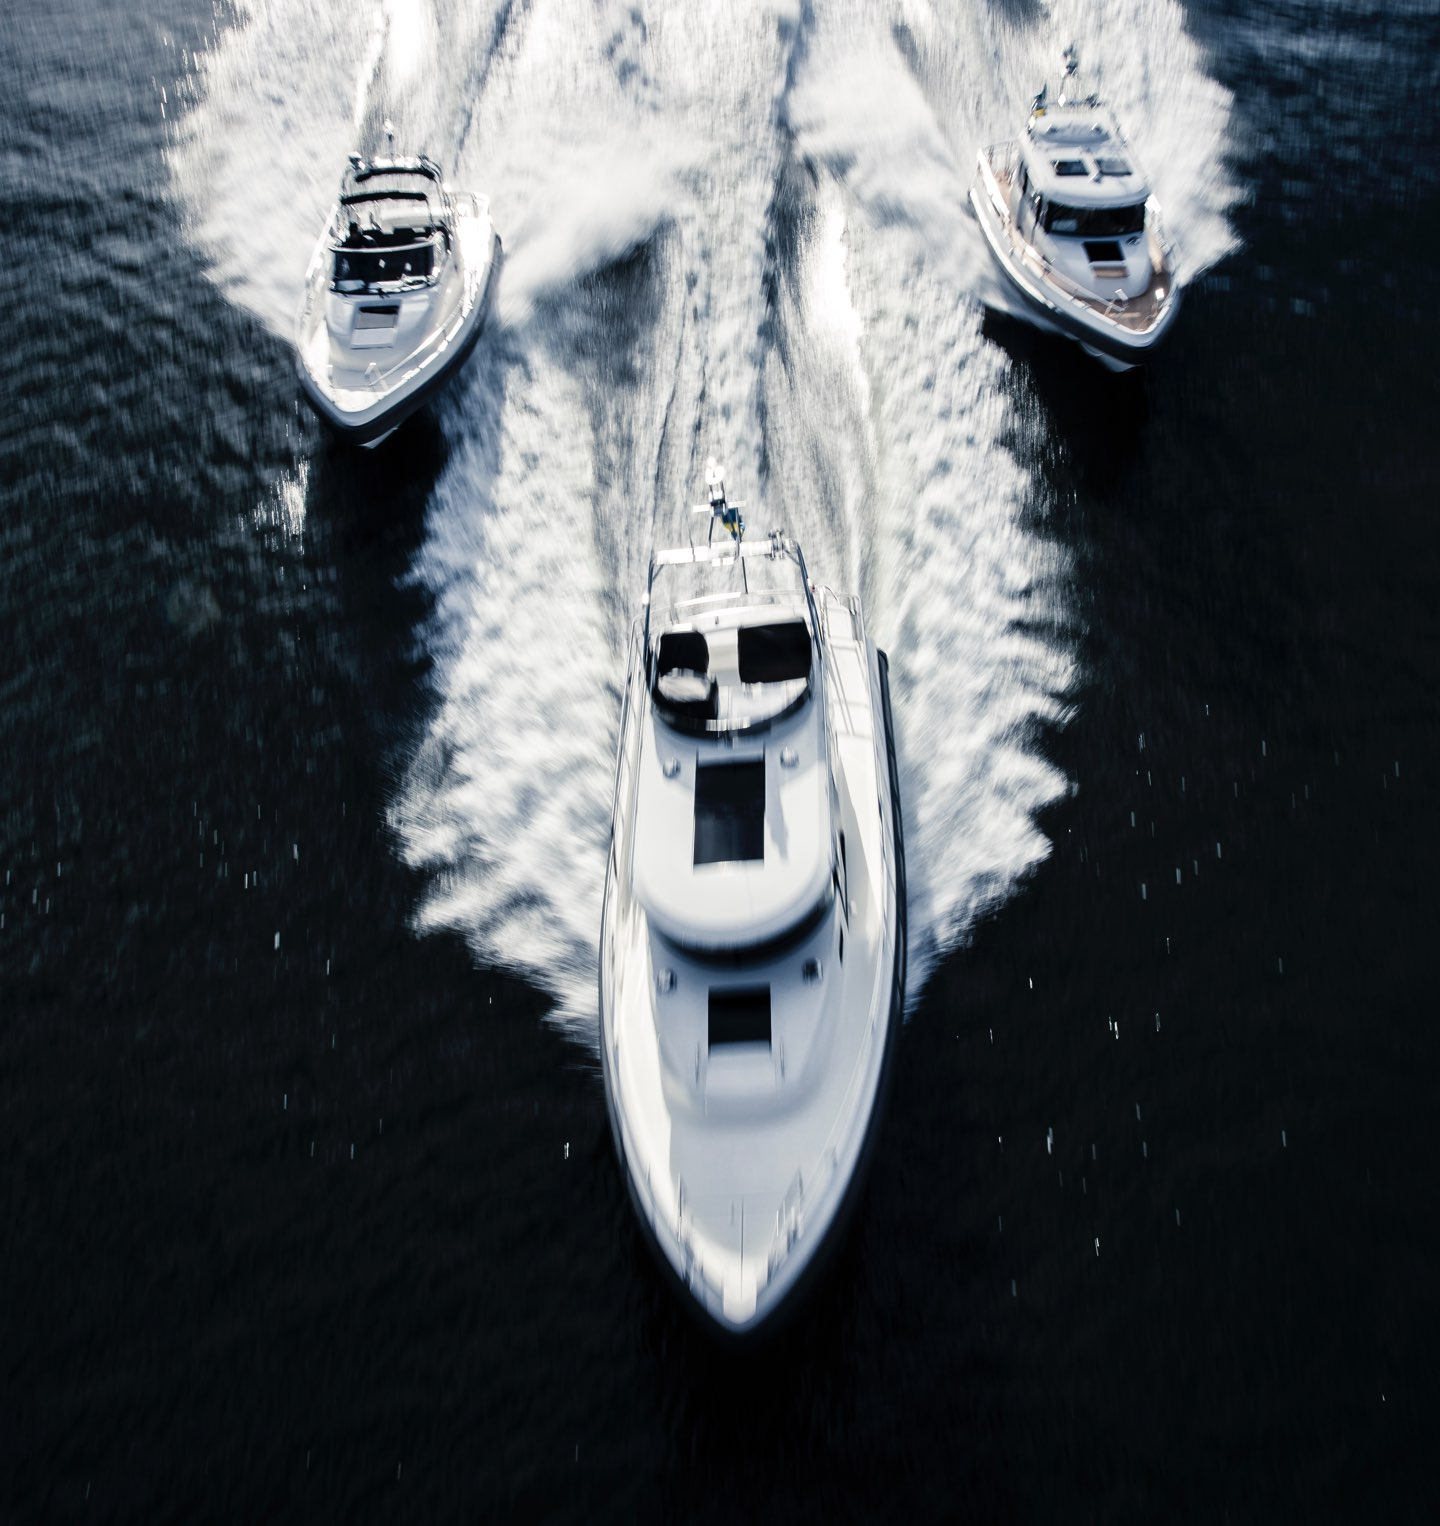 3 Paragon Yachts boats on the sea